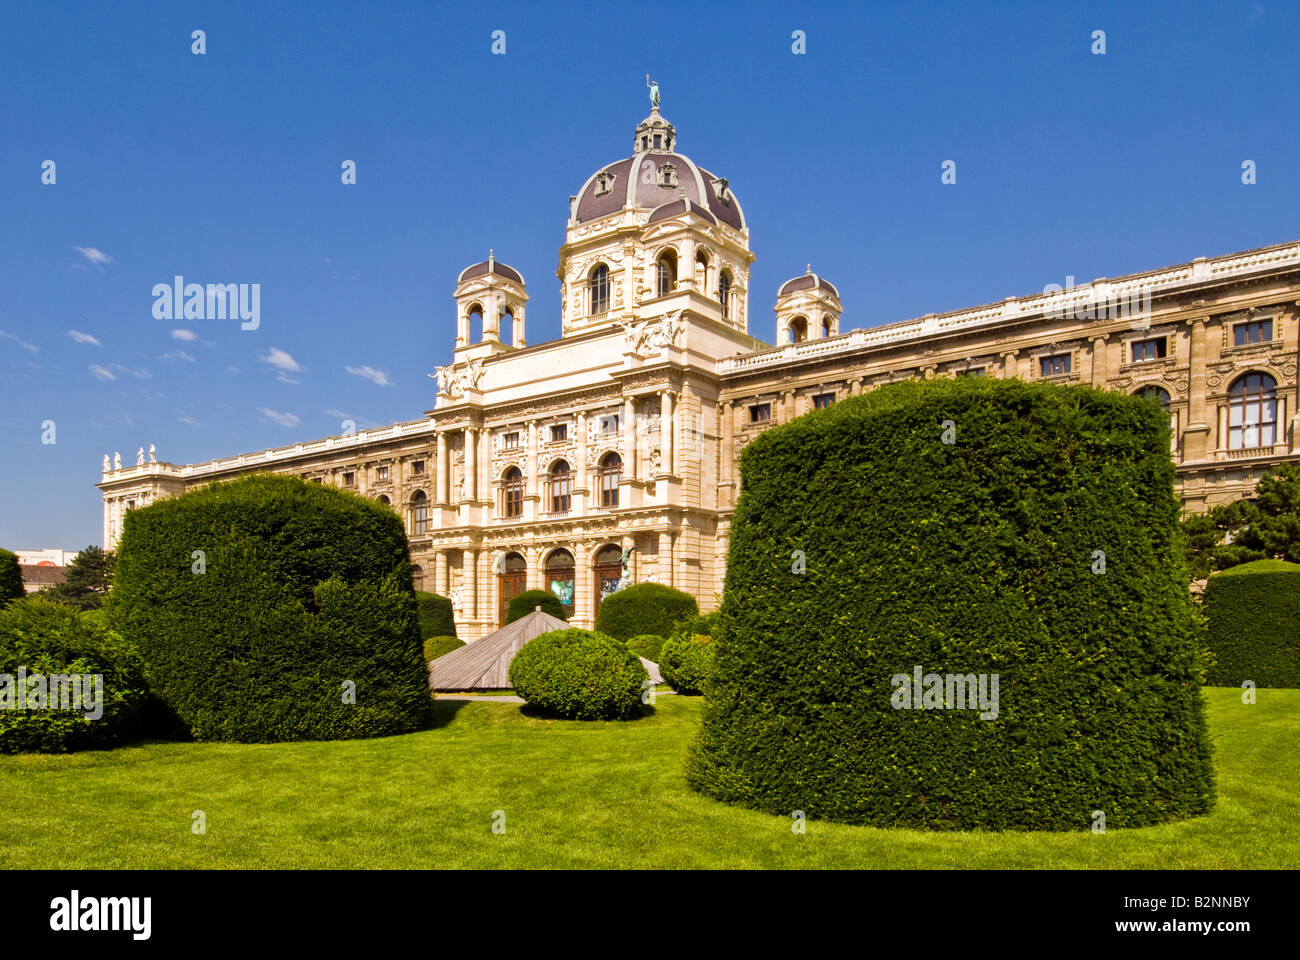 Museum of natural history, Vienna, Austria - Stock Image